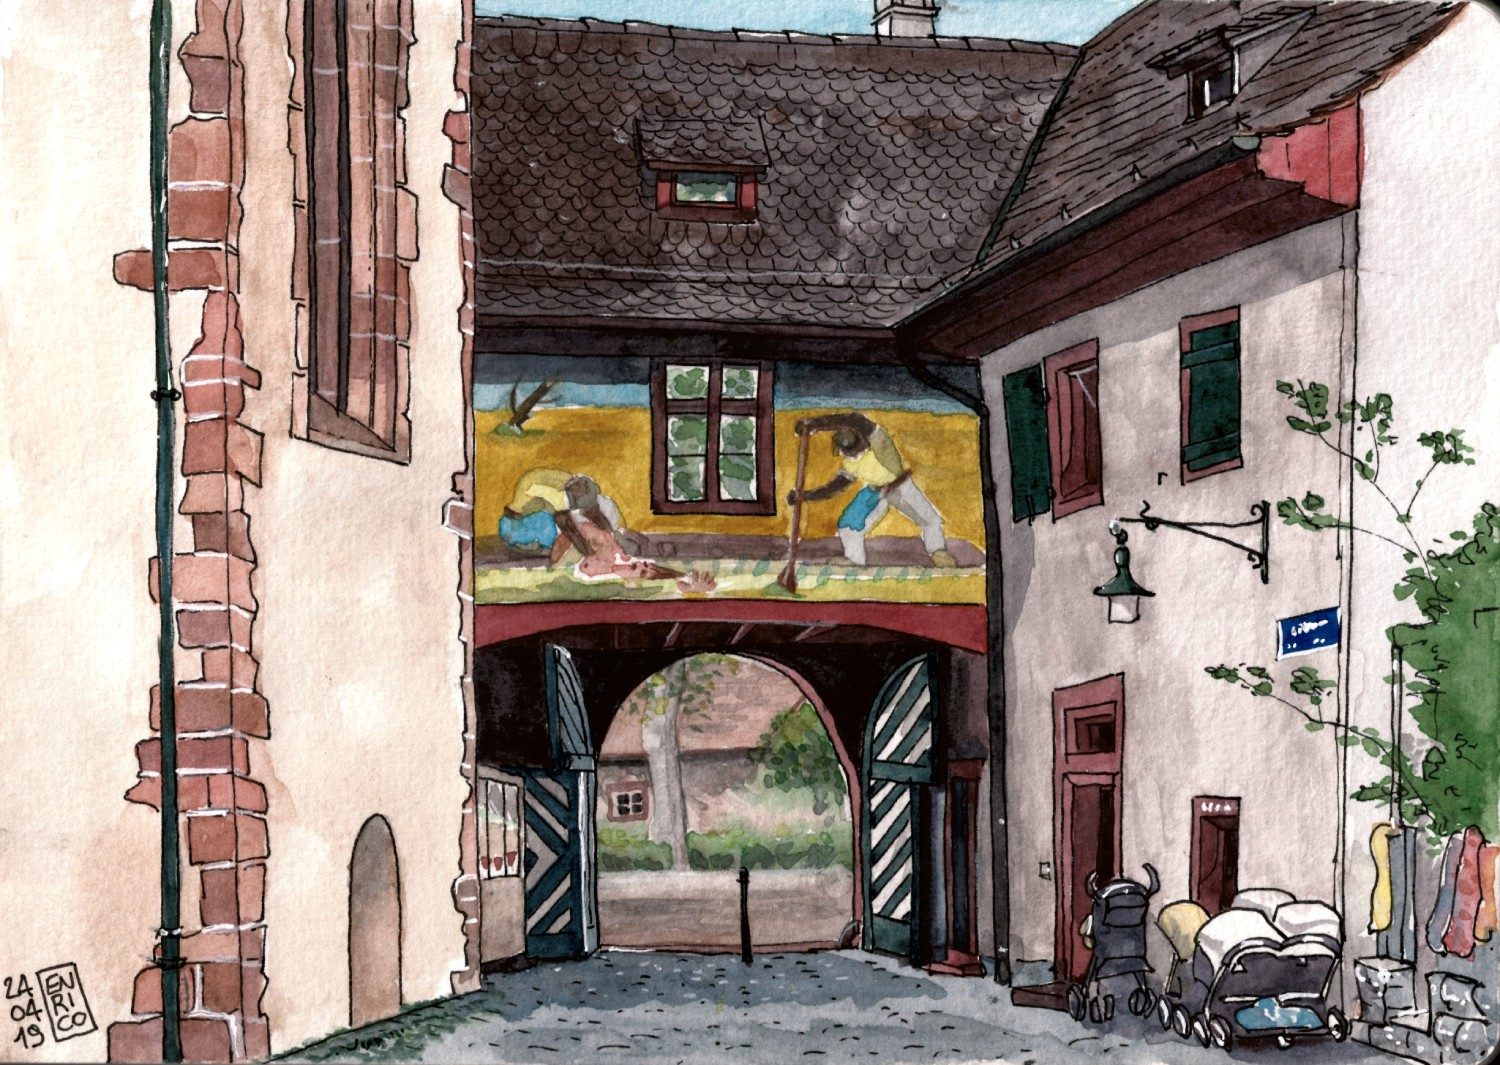 The archway over the entrance of the Lohnhof complex. It shows a beautiful mural painting of Niklaus Stoecklin, depicting what it seems a rescue of a drowning woman from the raging Rhine waters.